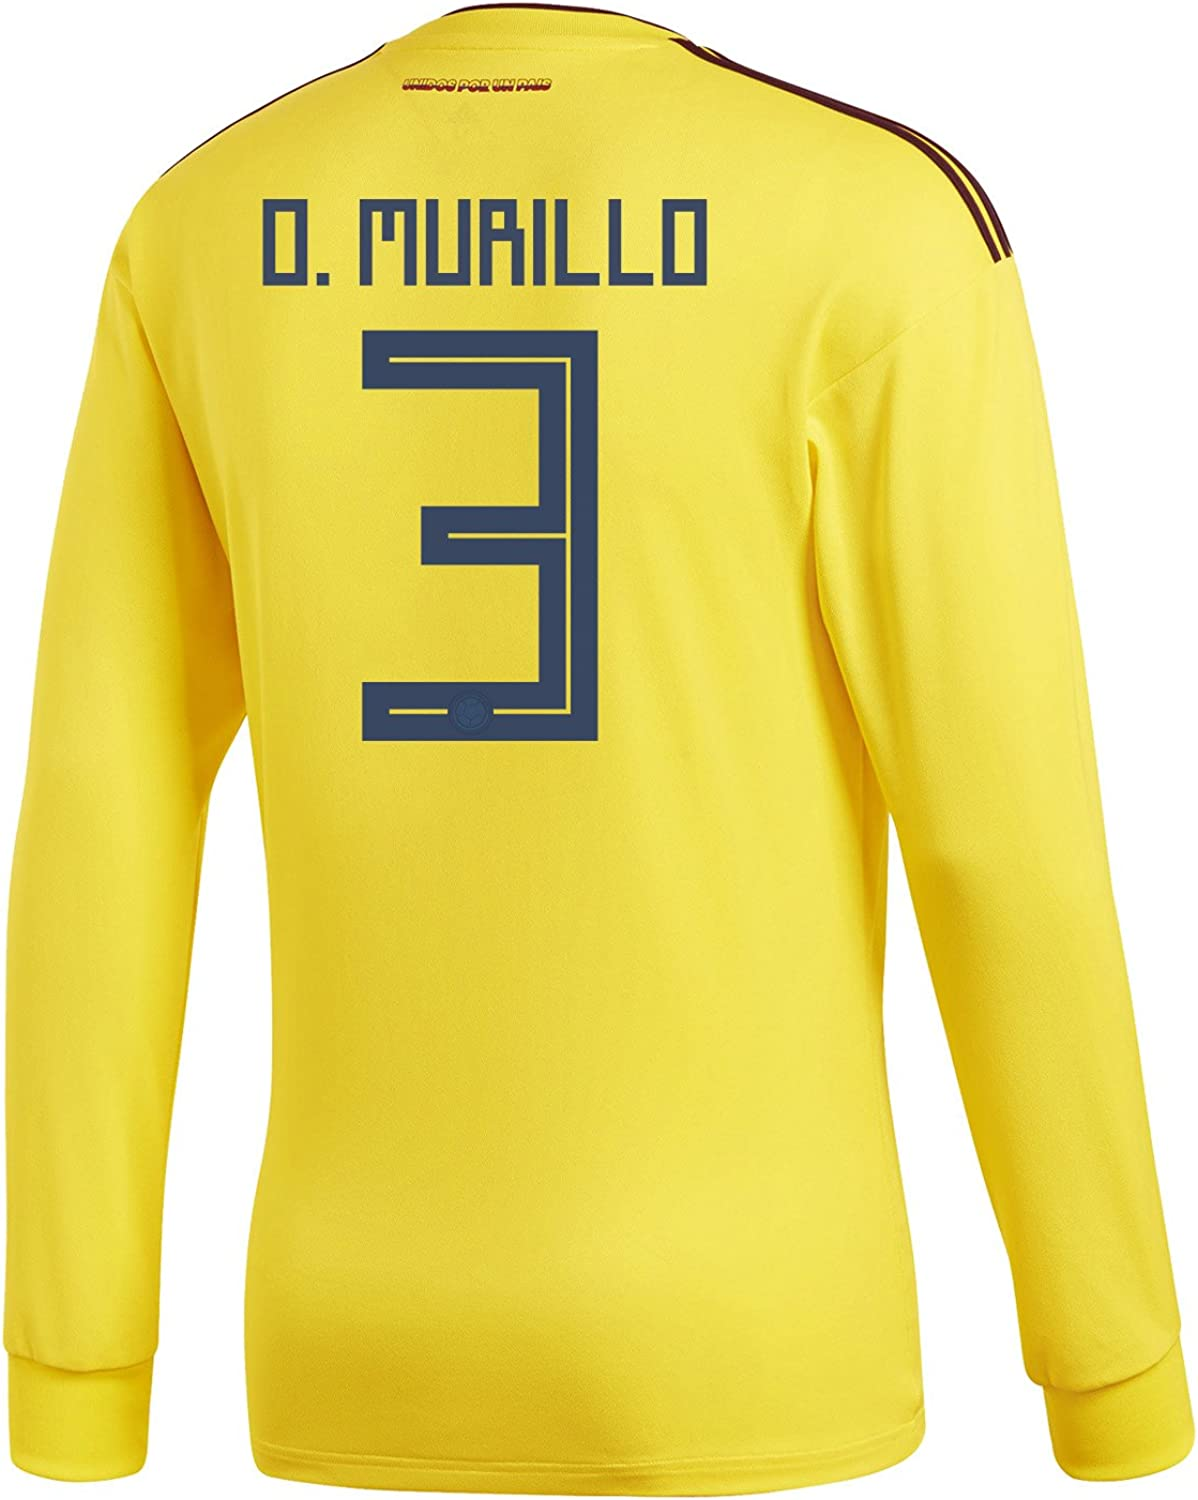 Adidas O. Murillo  3 Colombia Home Men's Long Sleeve Soccer Jersey World Cup 2018